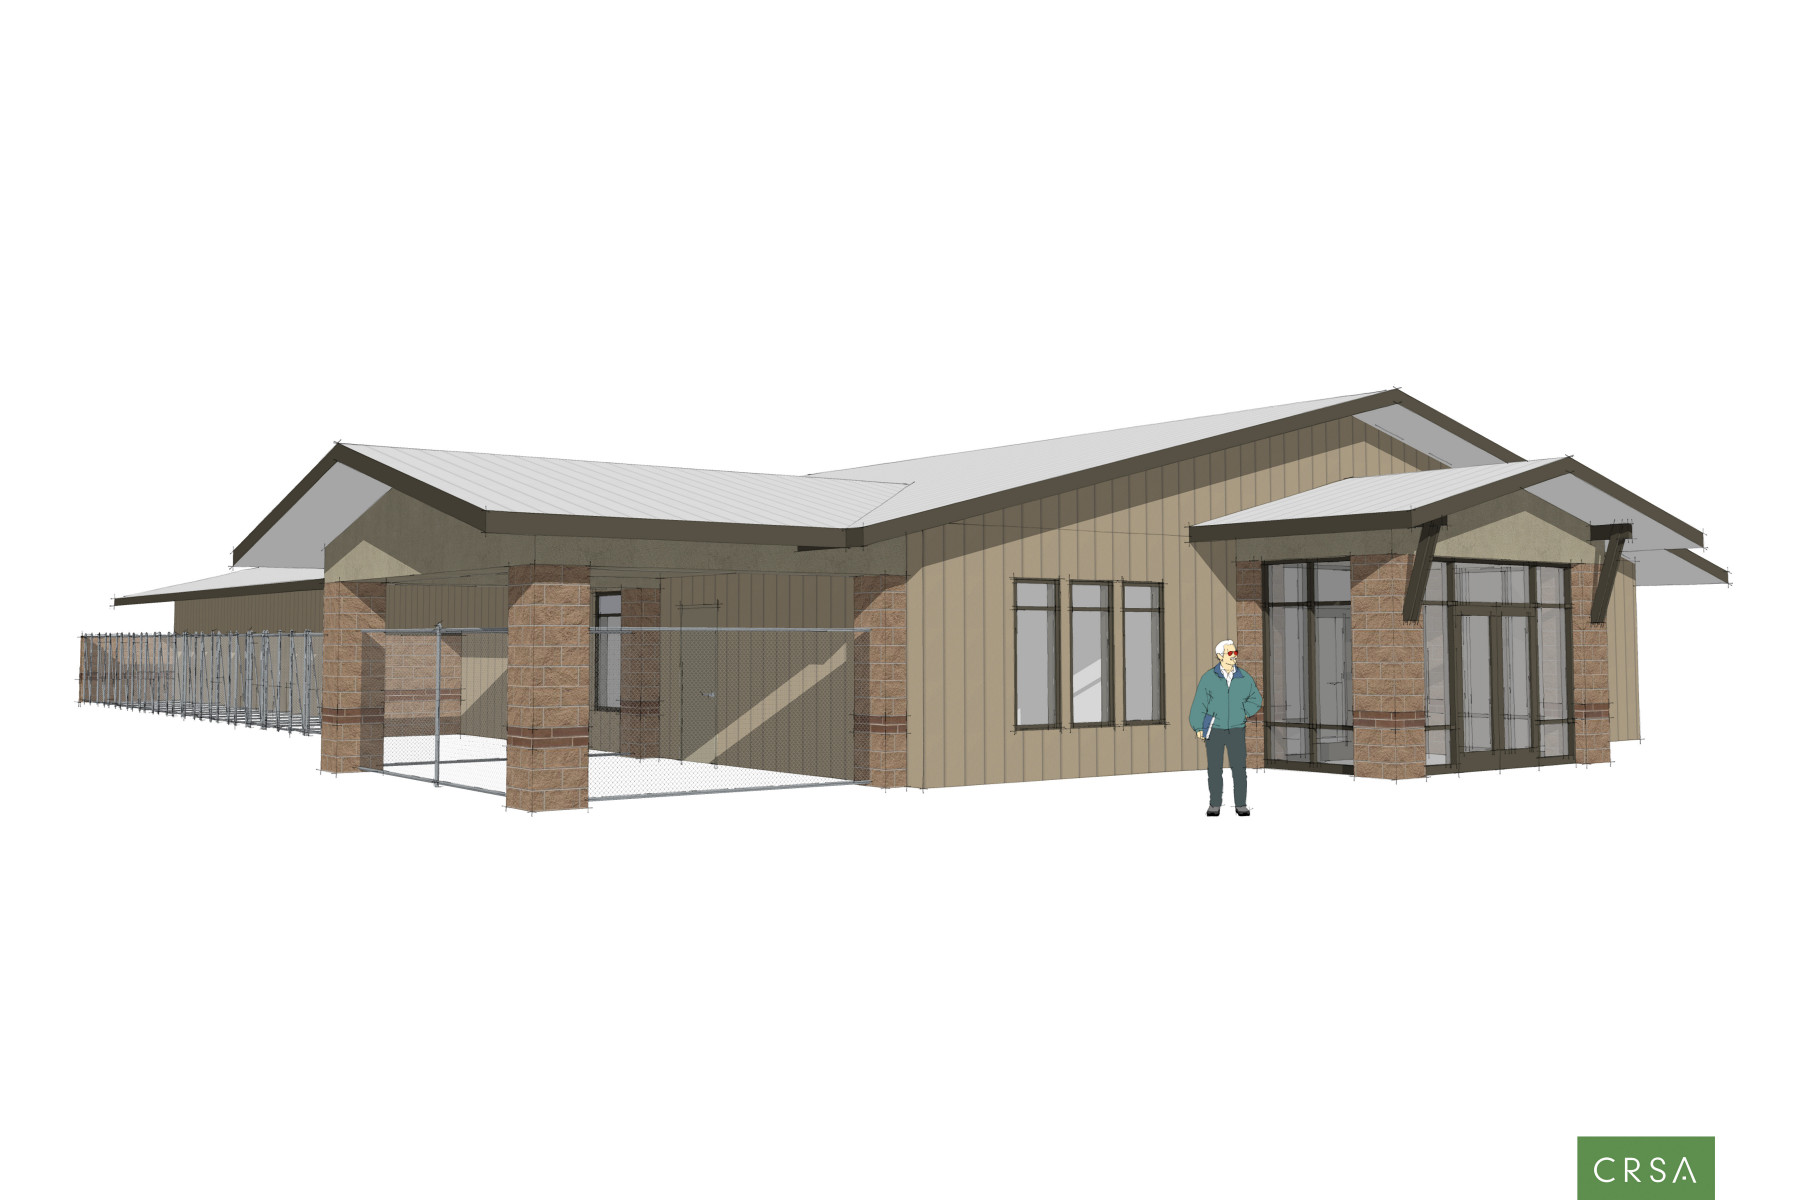 Architectural rendering of the proposed county animal shelter | Image courtesy of Washington County Commission, St. George News